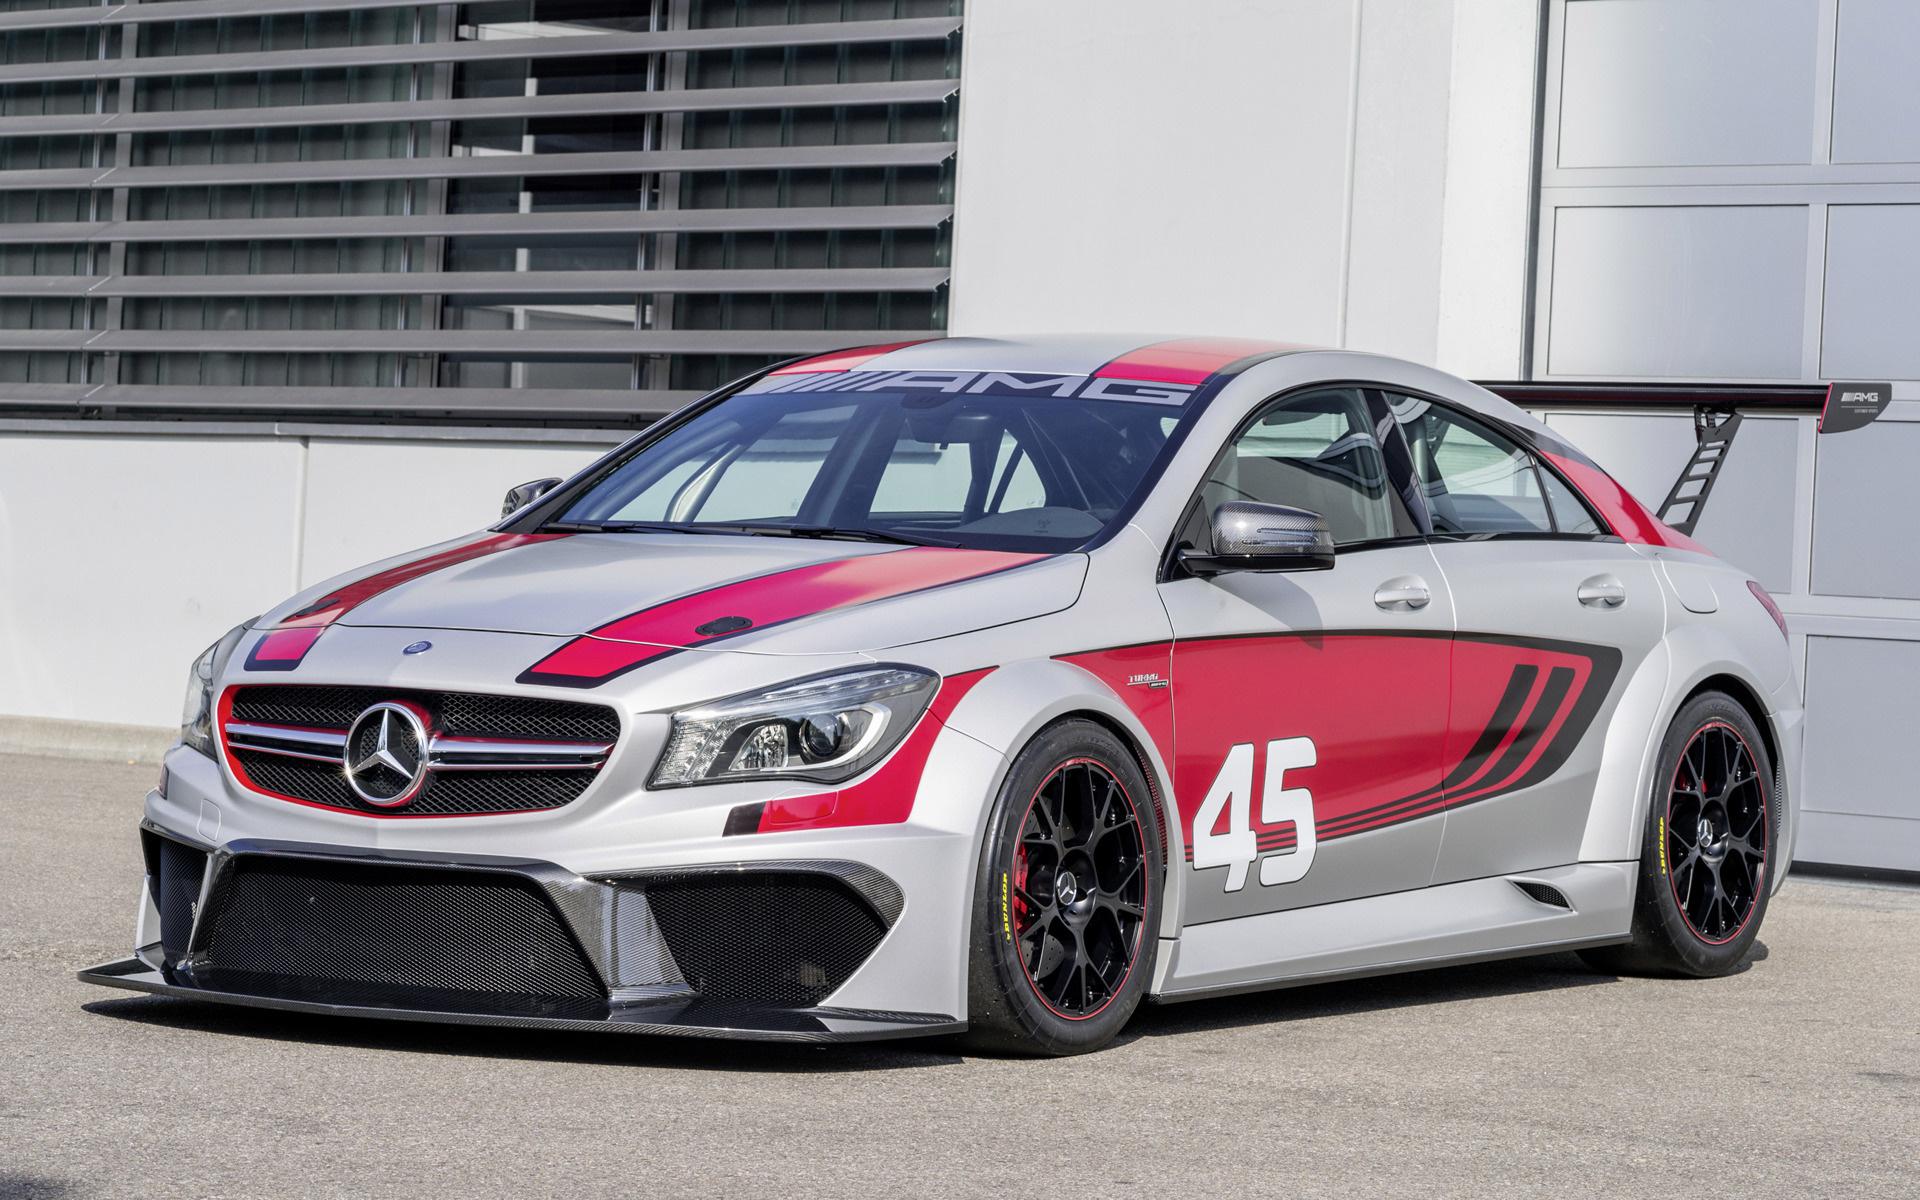 2013 Mercedes Benz Cla 45 Amg Racing Series Concept